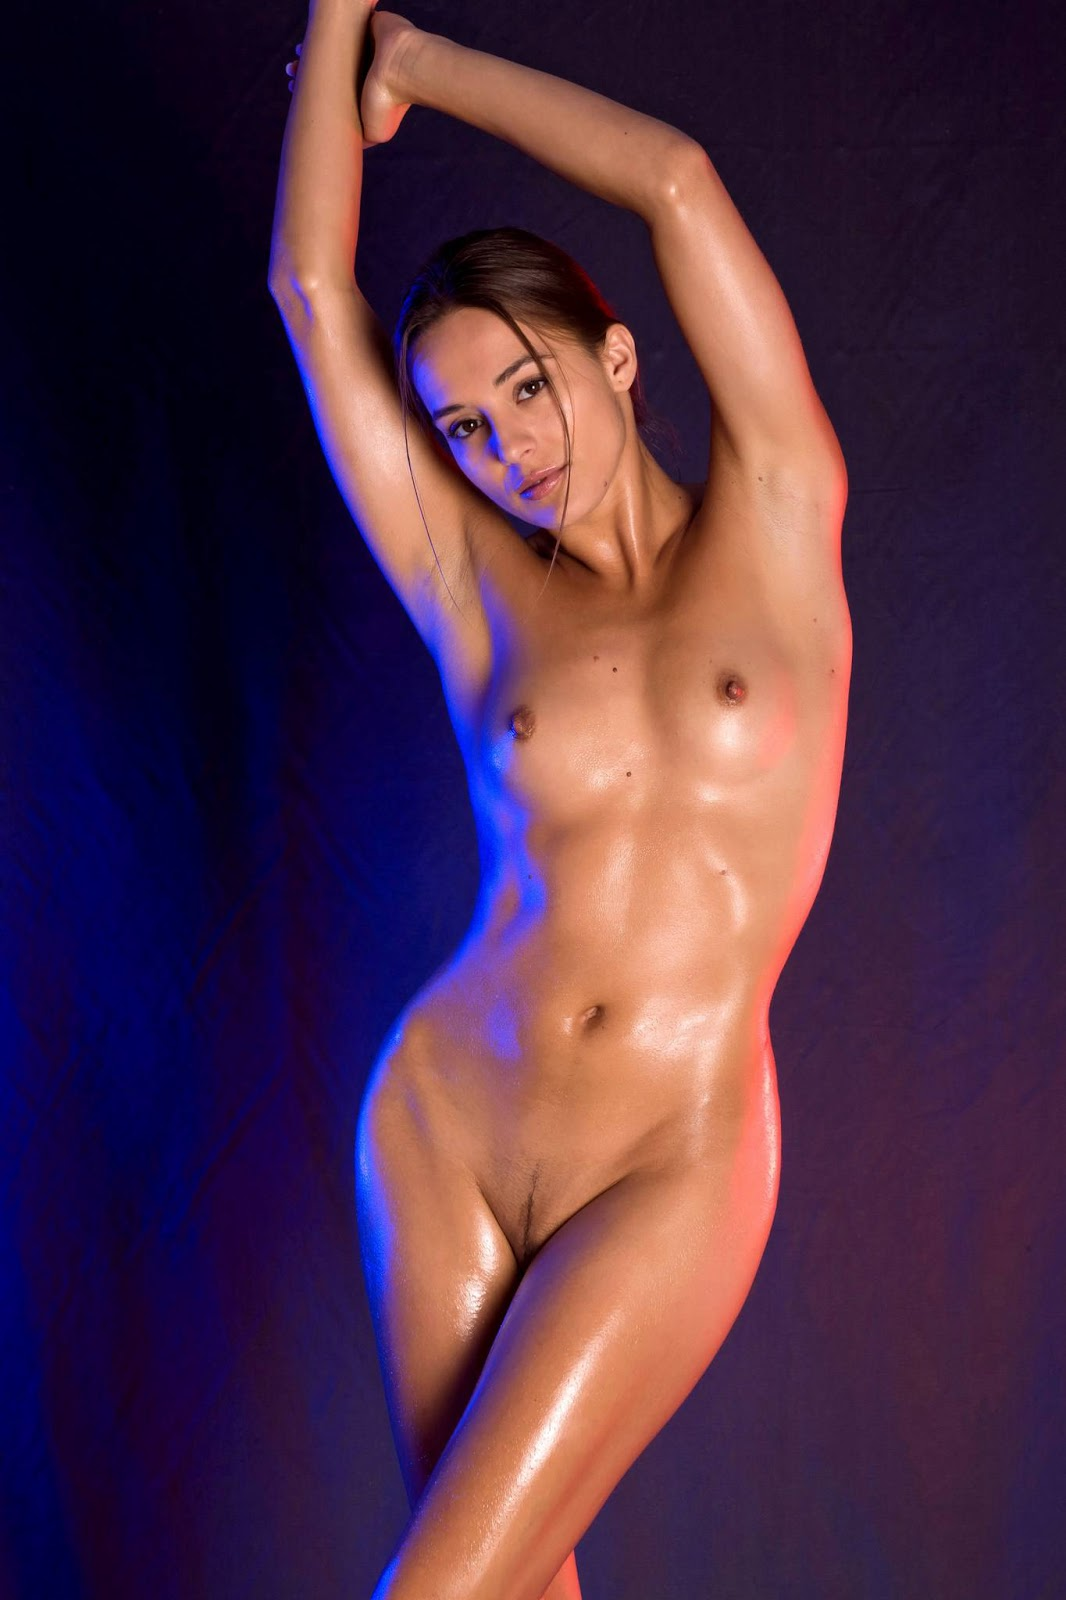 Pictures of hot naked girls with oil on them are